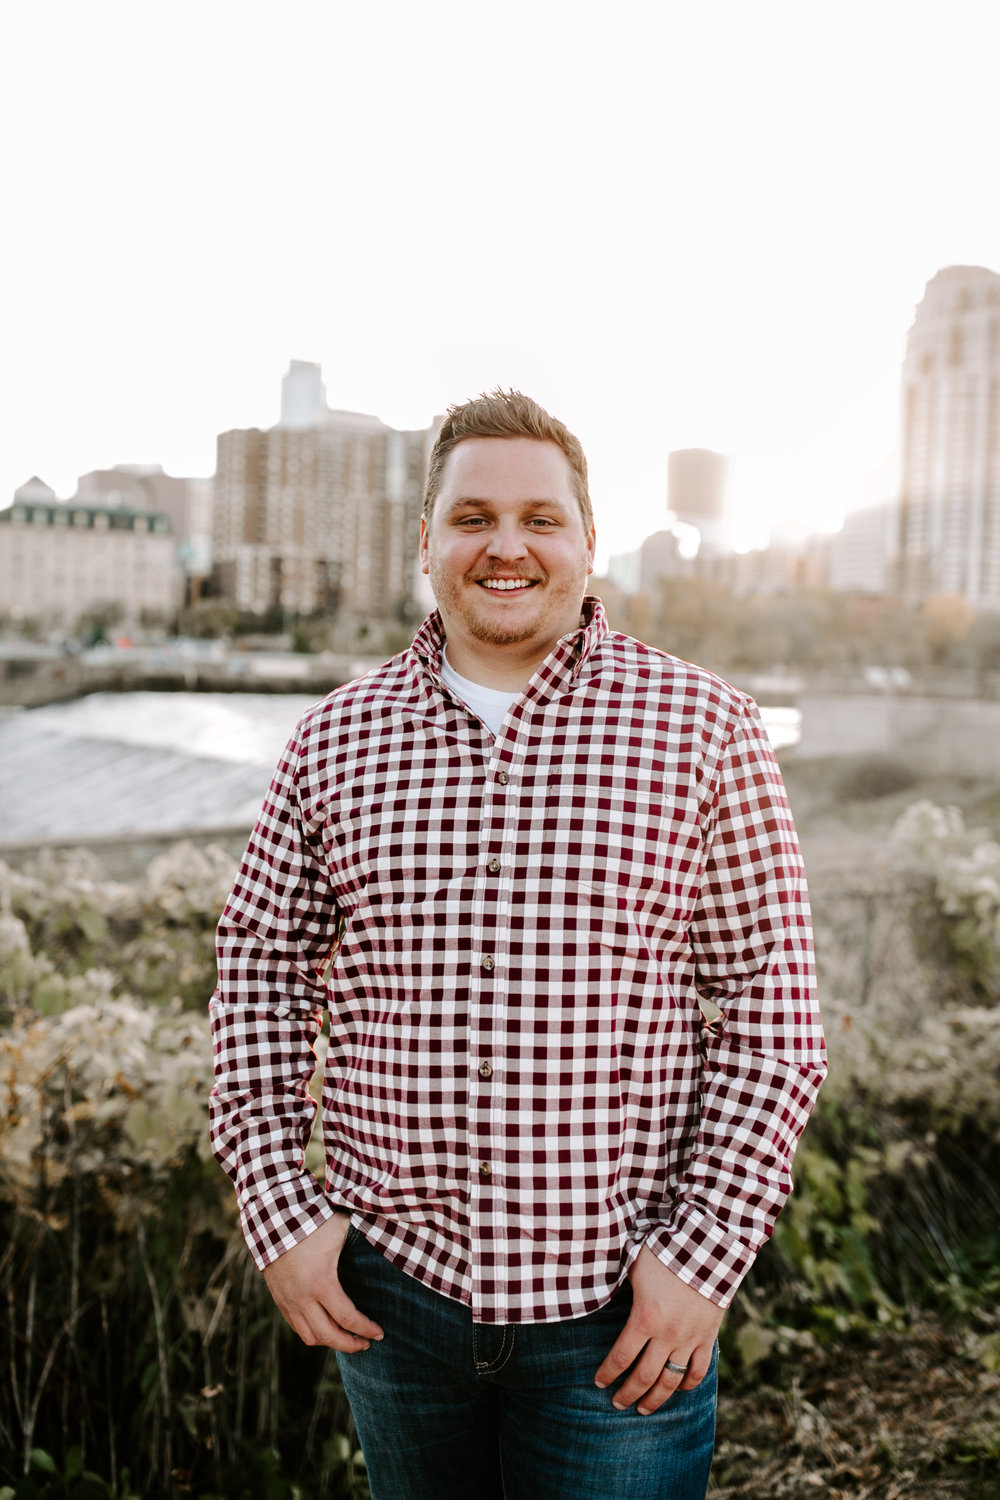 Dr. Ethan - Doctor and OwnerDr. Ethan grew up in the small town of Dassel, Minnesota which is north of Mankato. Growing up, Dr. Ethan was very active being a three sport athlete and always knew that he wanted to be in a profession that dealt with the human body. He first was introduced to chiropractic after a sports injury. After visiting the local chiropractor, Dr. Ethan knew this was the exact profession he was looking for.After completion of high school, Dr. Ethan moved down to Mankato to attend Minnesota State University- Mankato. He obtained his Bachelors of Science in Exercise Science and fell in love with everything that Mankato had to offer. He and Hannah then moved to Bloomington, Minnesota where he attended Northwestern Health Sciences University for Chiropractic. It was at Northwestern where he learned about the amazing power of the body to heal itself from the inside out without the use of drugs or surgery. Dr. Ethan feels beyond grateful for the opportunity to serve Mankato and surrounding areas through Neurologically-based Chiropractic care.When Dr. Ethan is not in the office he loves to spend time out in nature. He enjoys hunting, hiking, being on the water and spending time with family and friends.